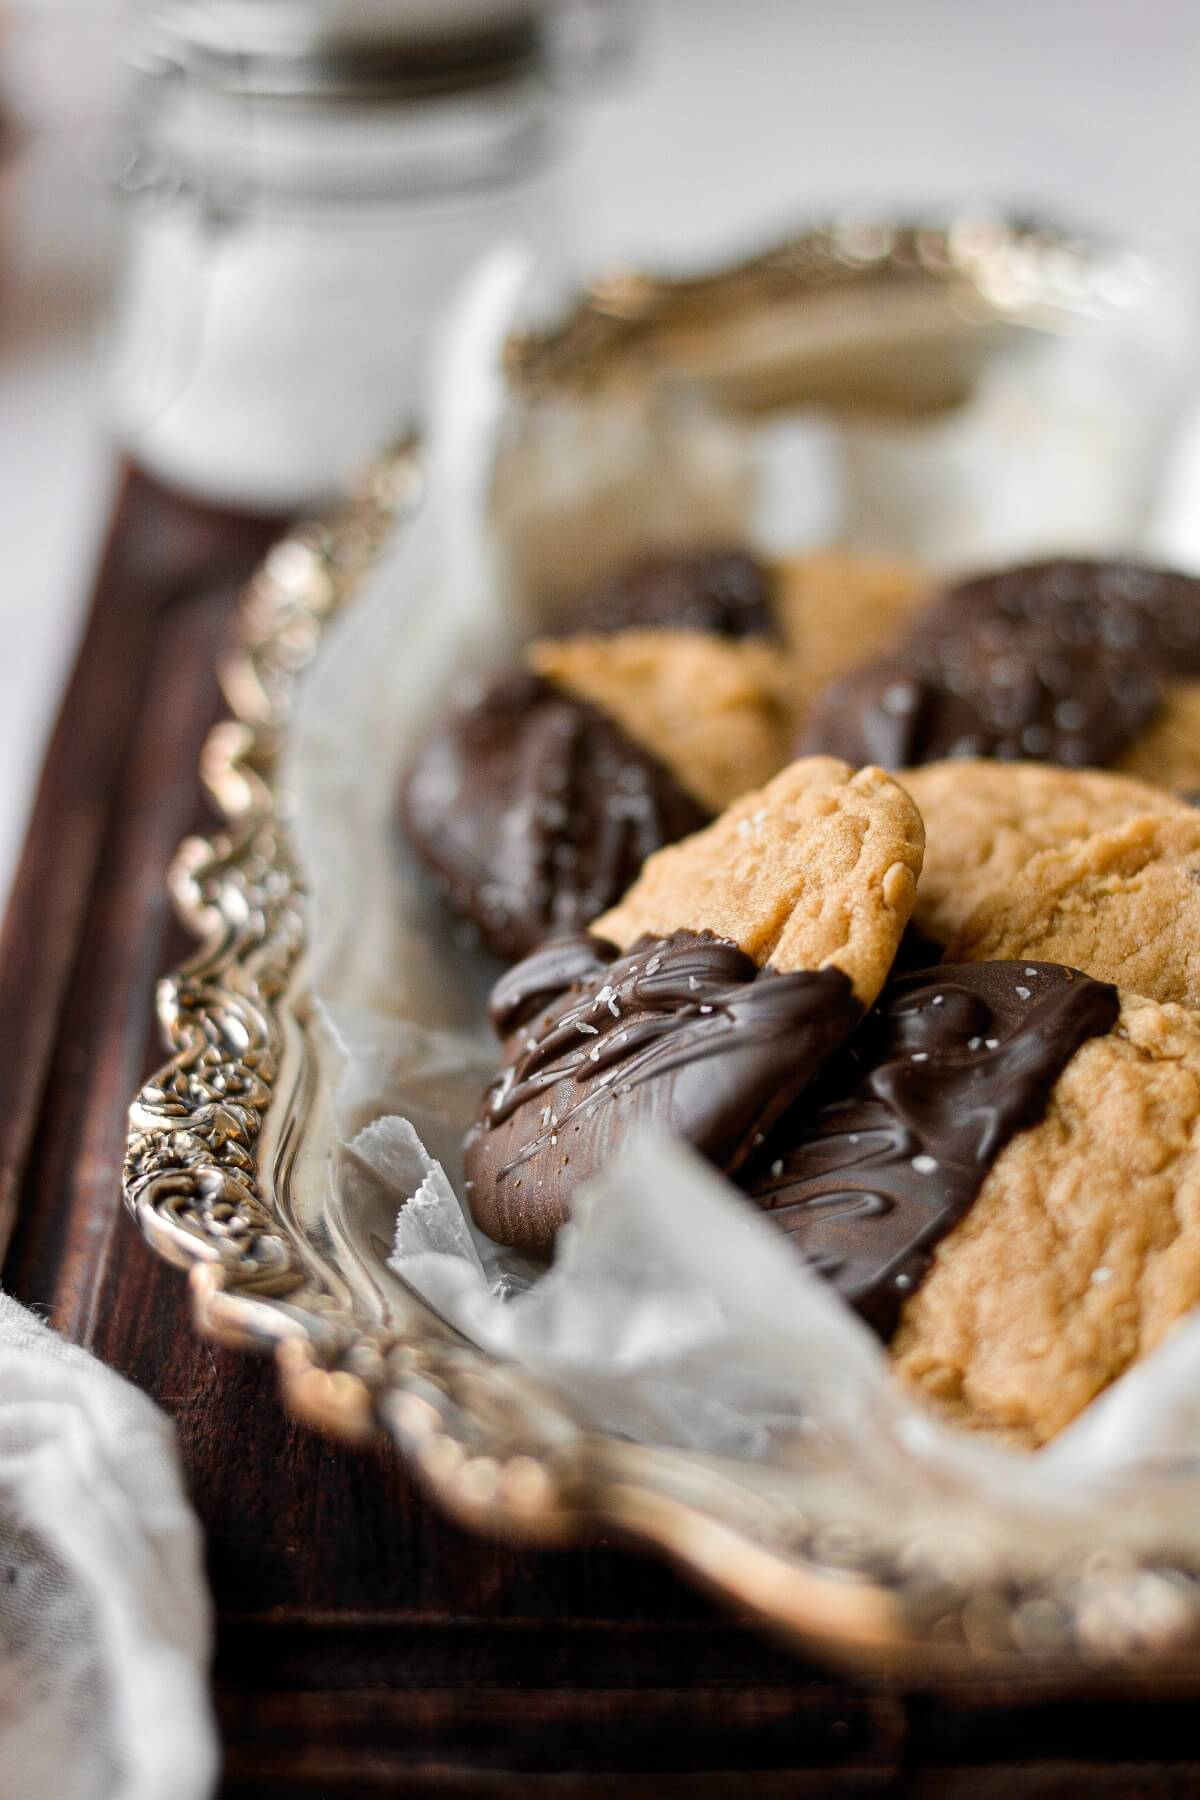 Peanut butter cookies dipped in chocolate and sprinkled with sea salt.